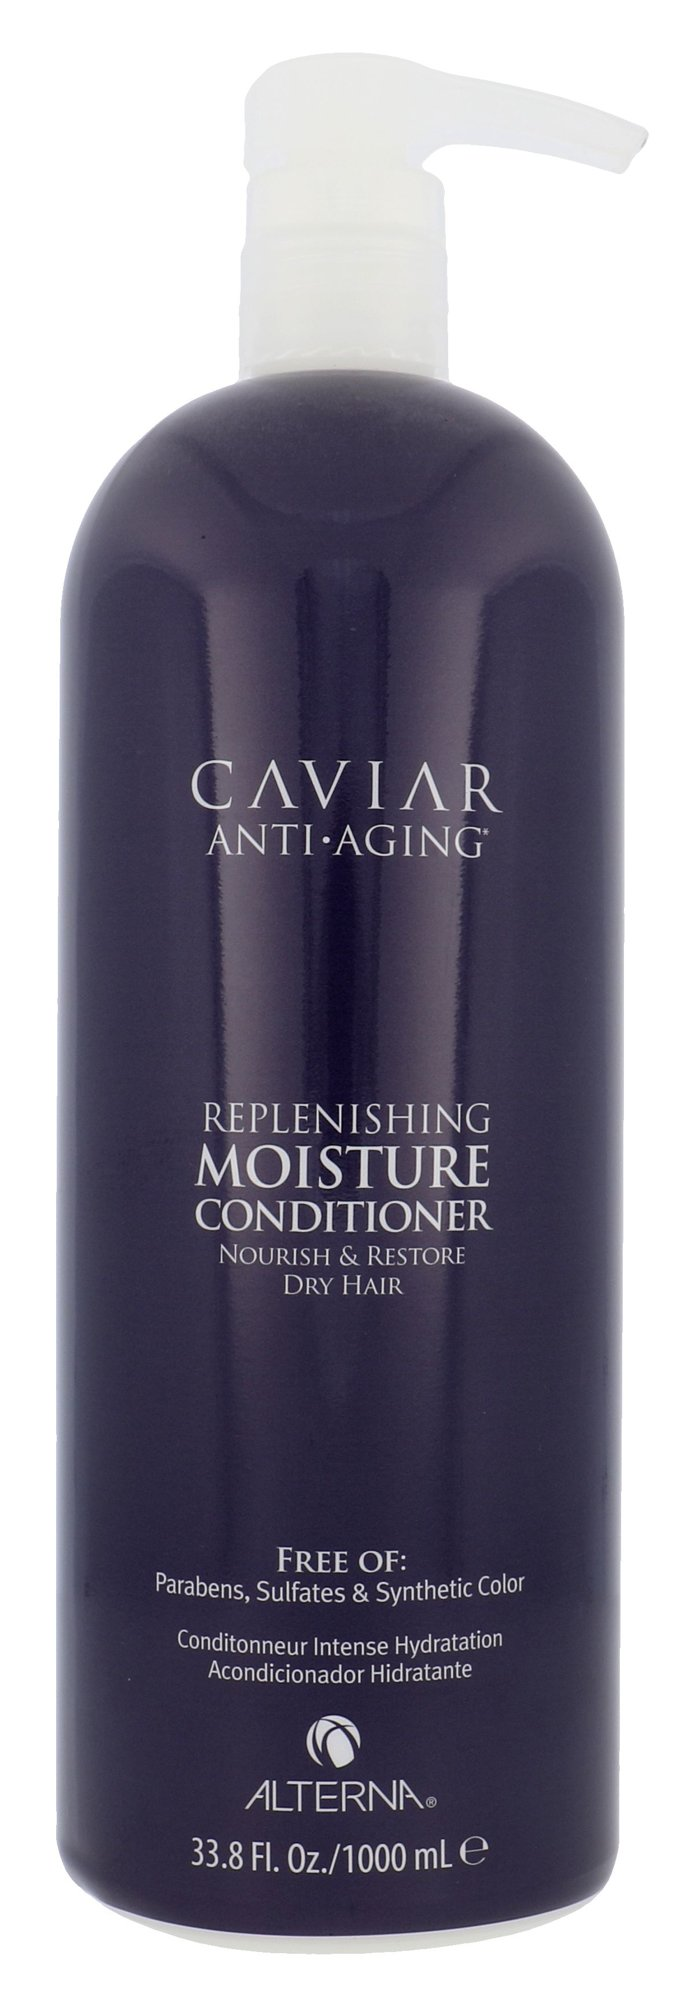 Alterna Caviar Anti-Aging Cosmetic 1000ml